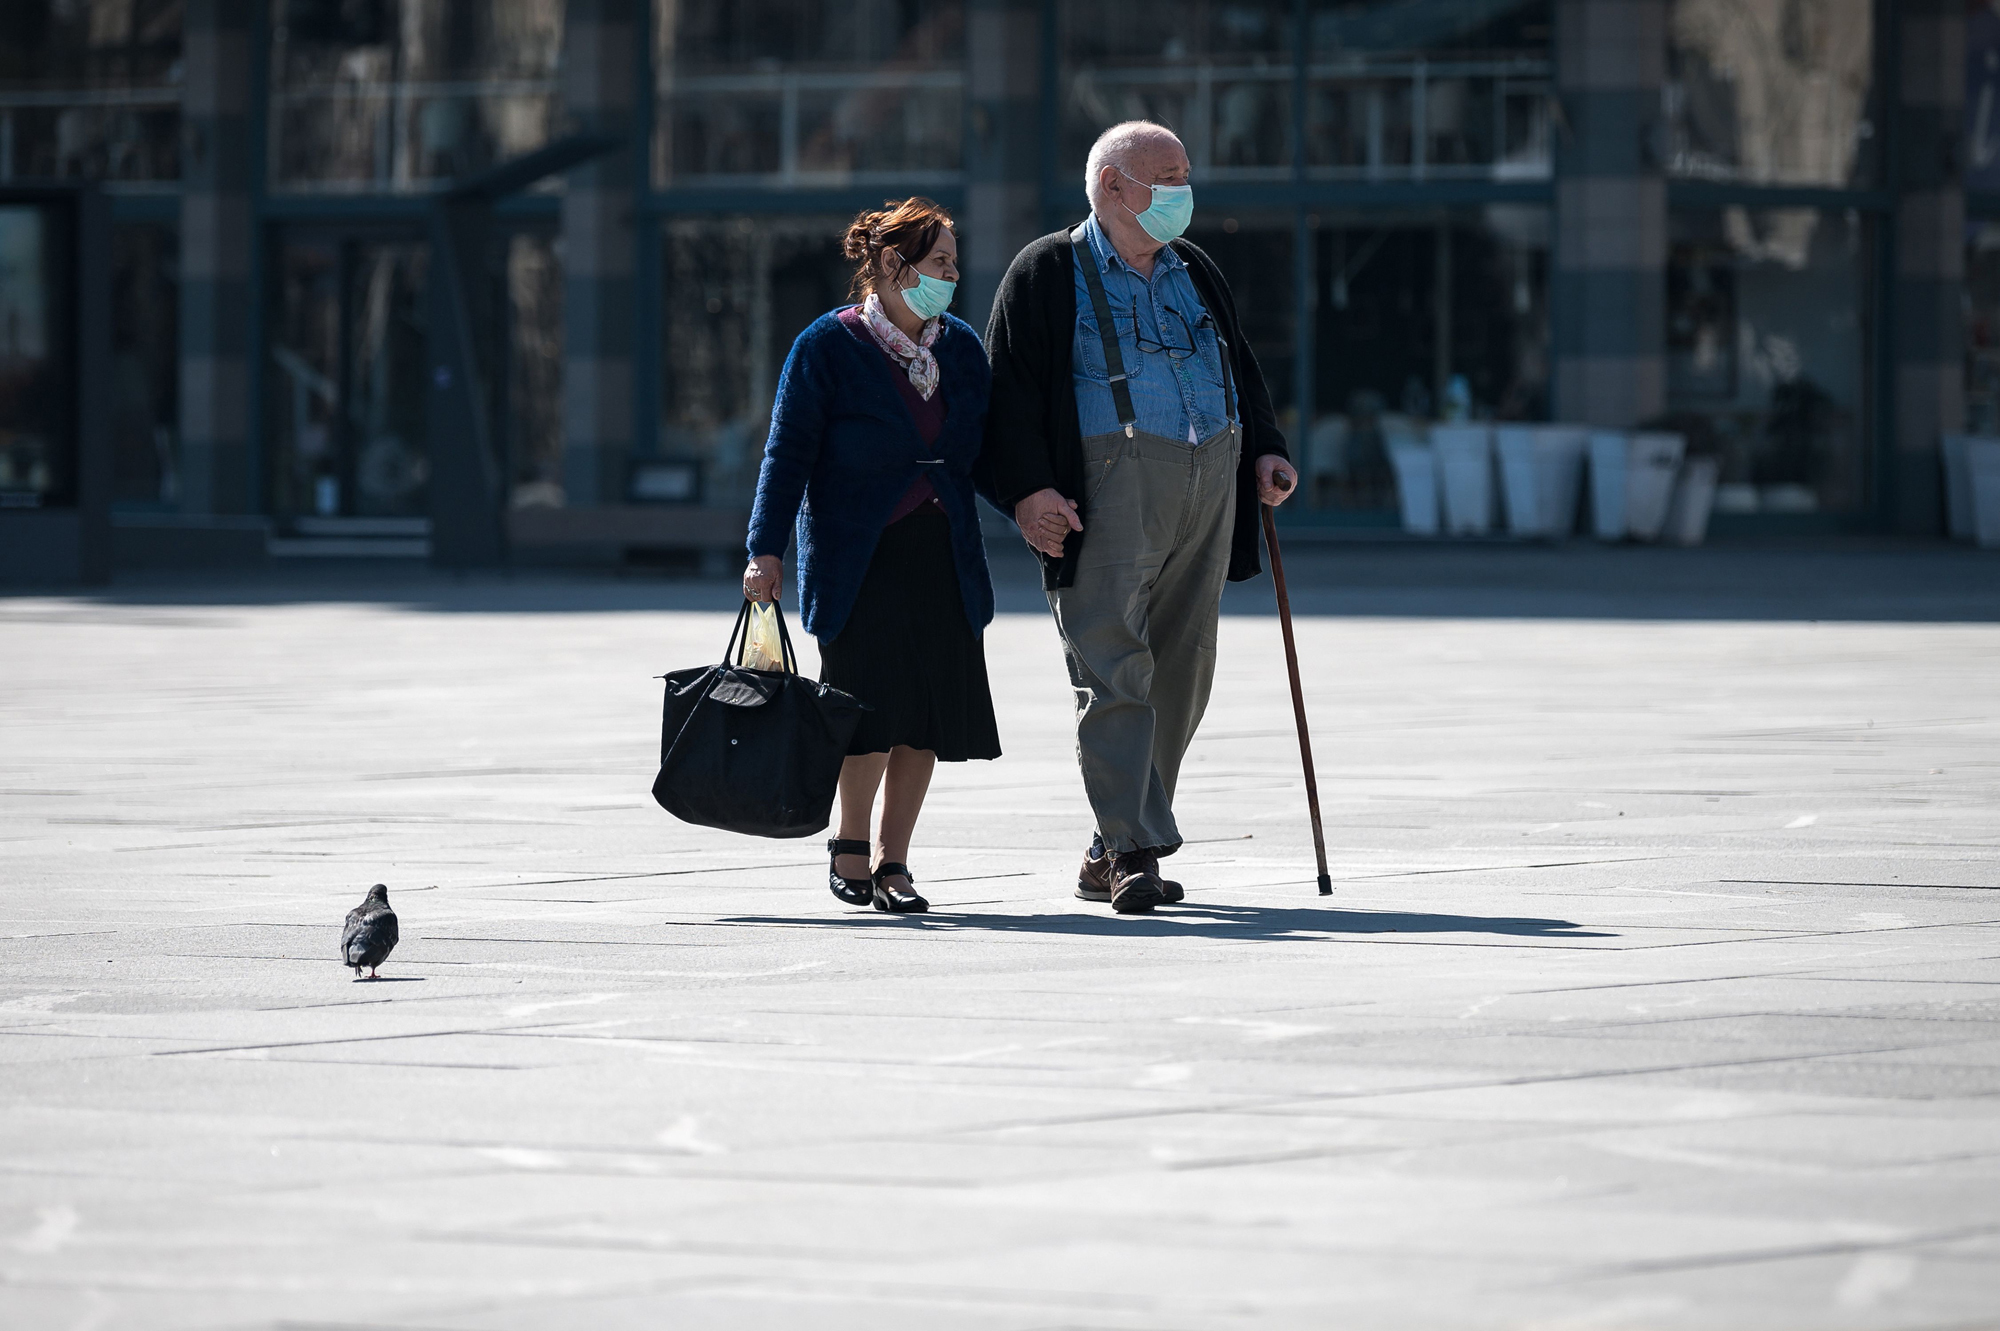 An elderly couple wearing protective masks walks through Belgrade's main square on March 17, after Serbia's president said the new restrictions were necessary to 'save our elderly.' (Andrej Isakovic/AFP via Getty Images)